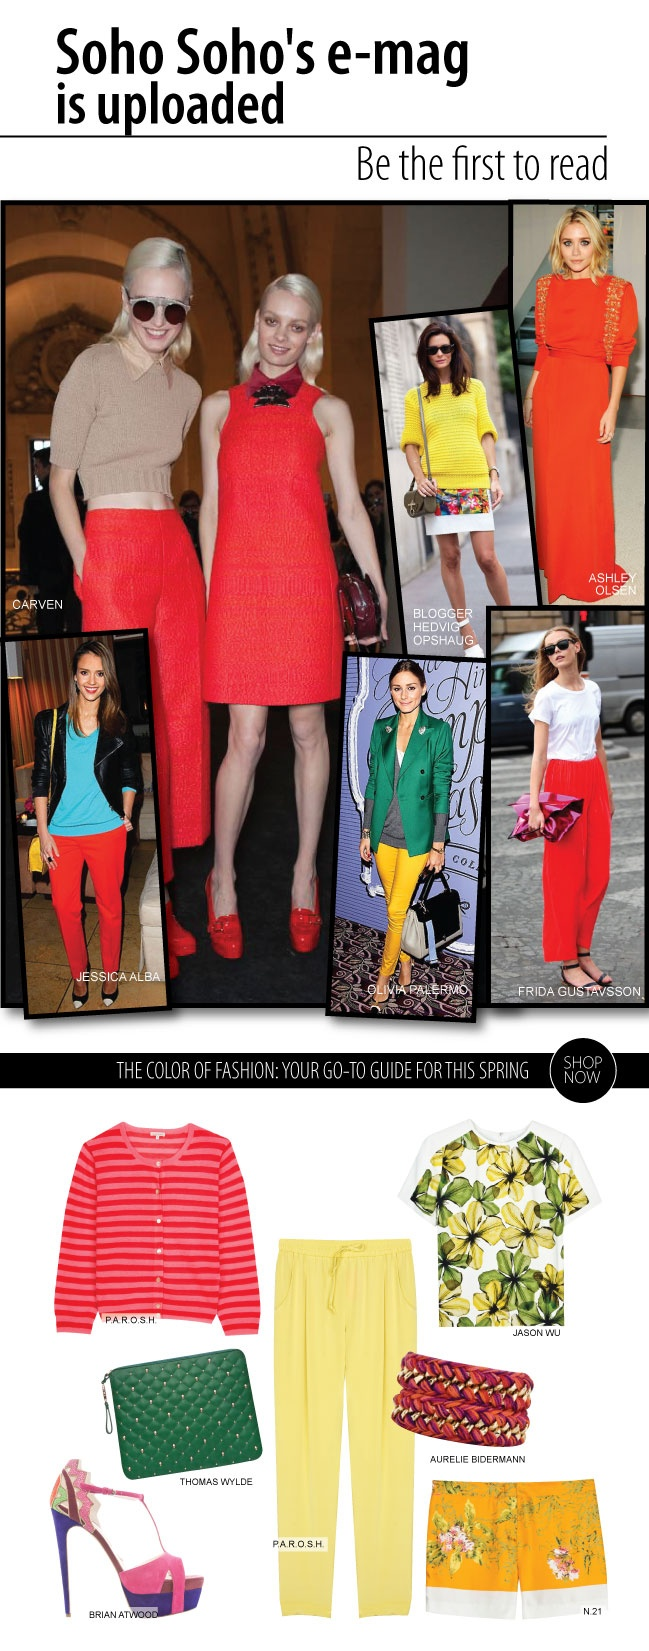 In Style with Color Book http://www.sohosoho.gr/en/magazine/editorial/january_2013/